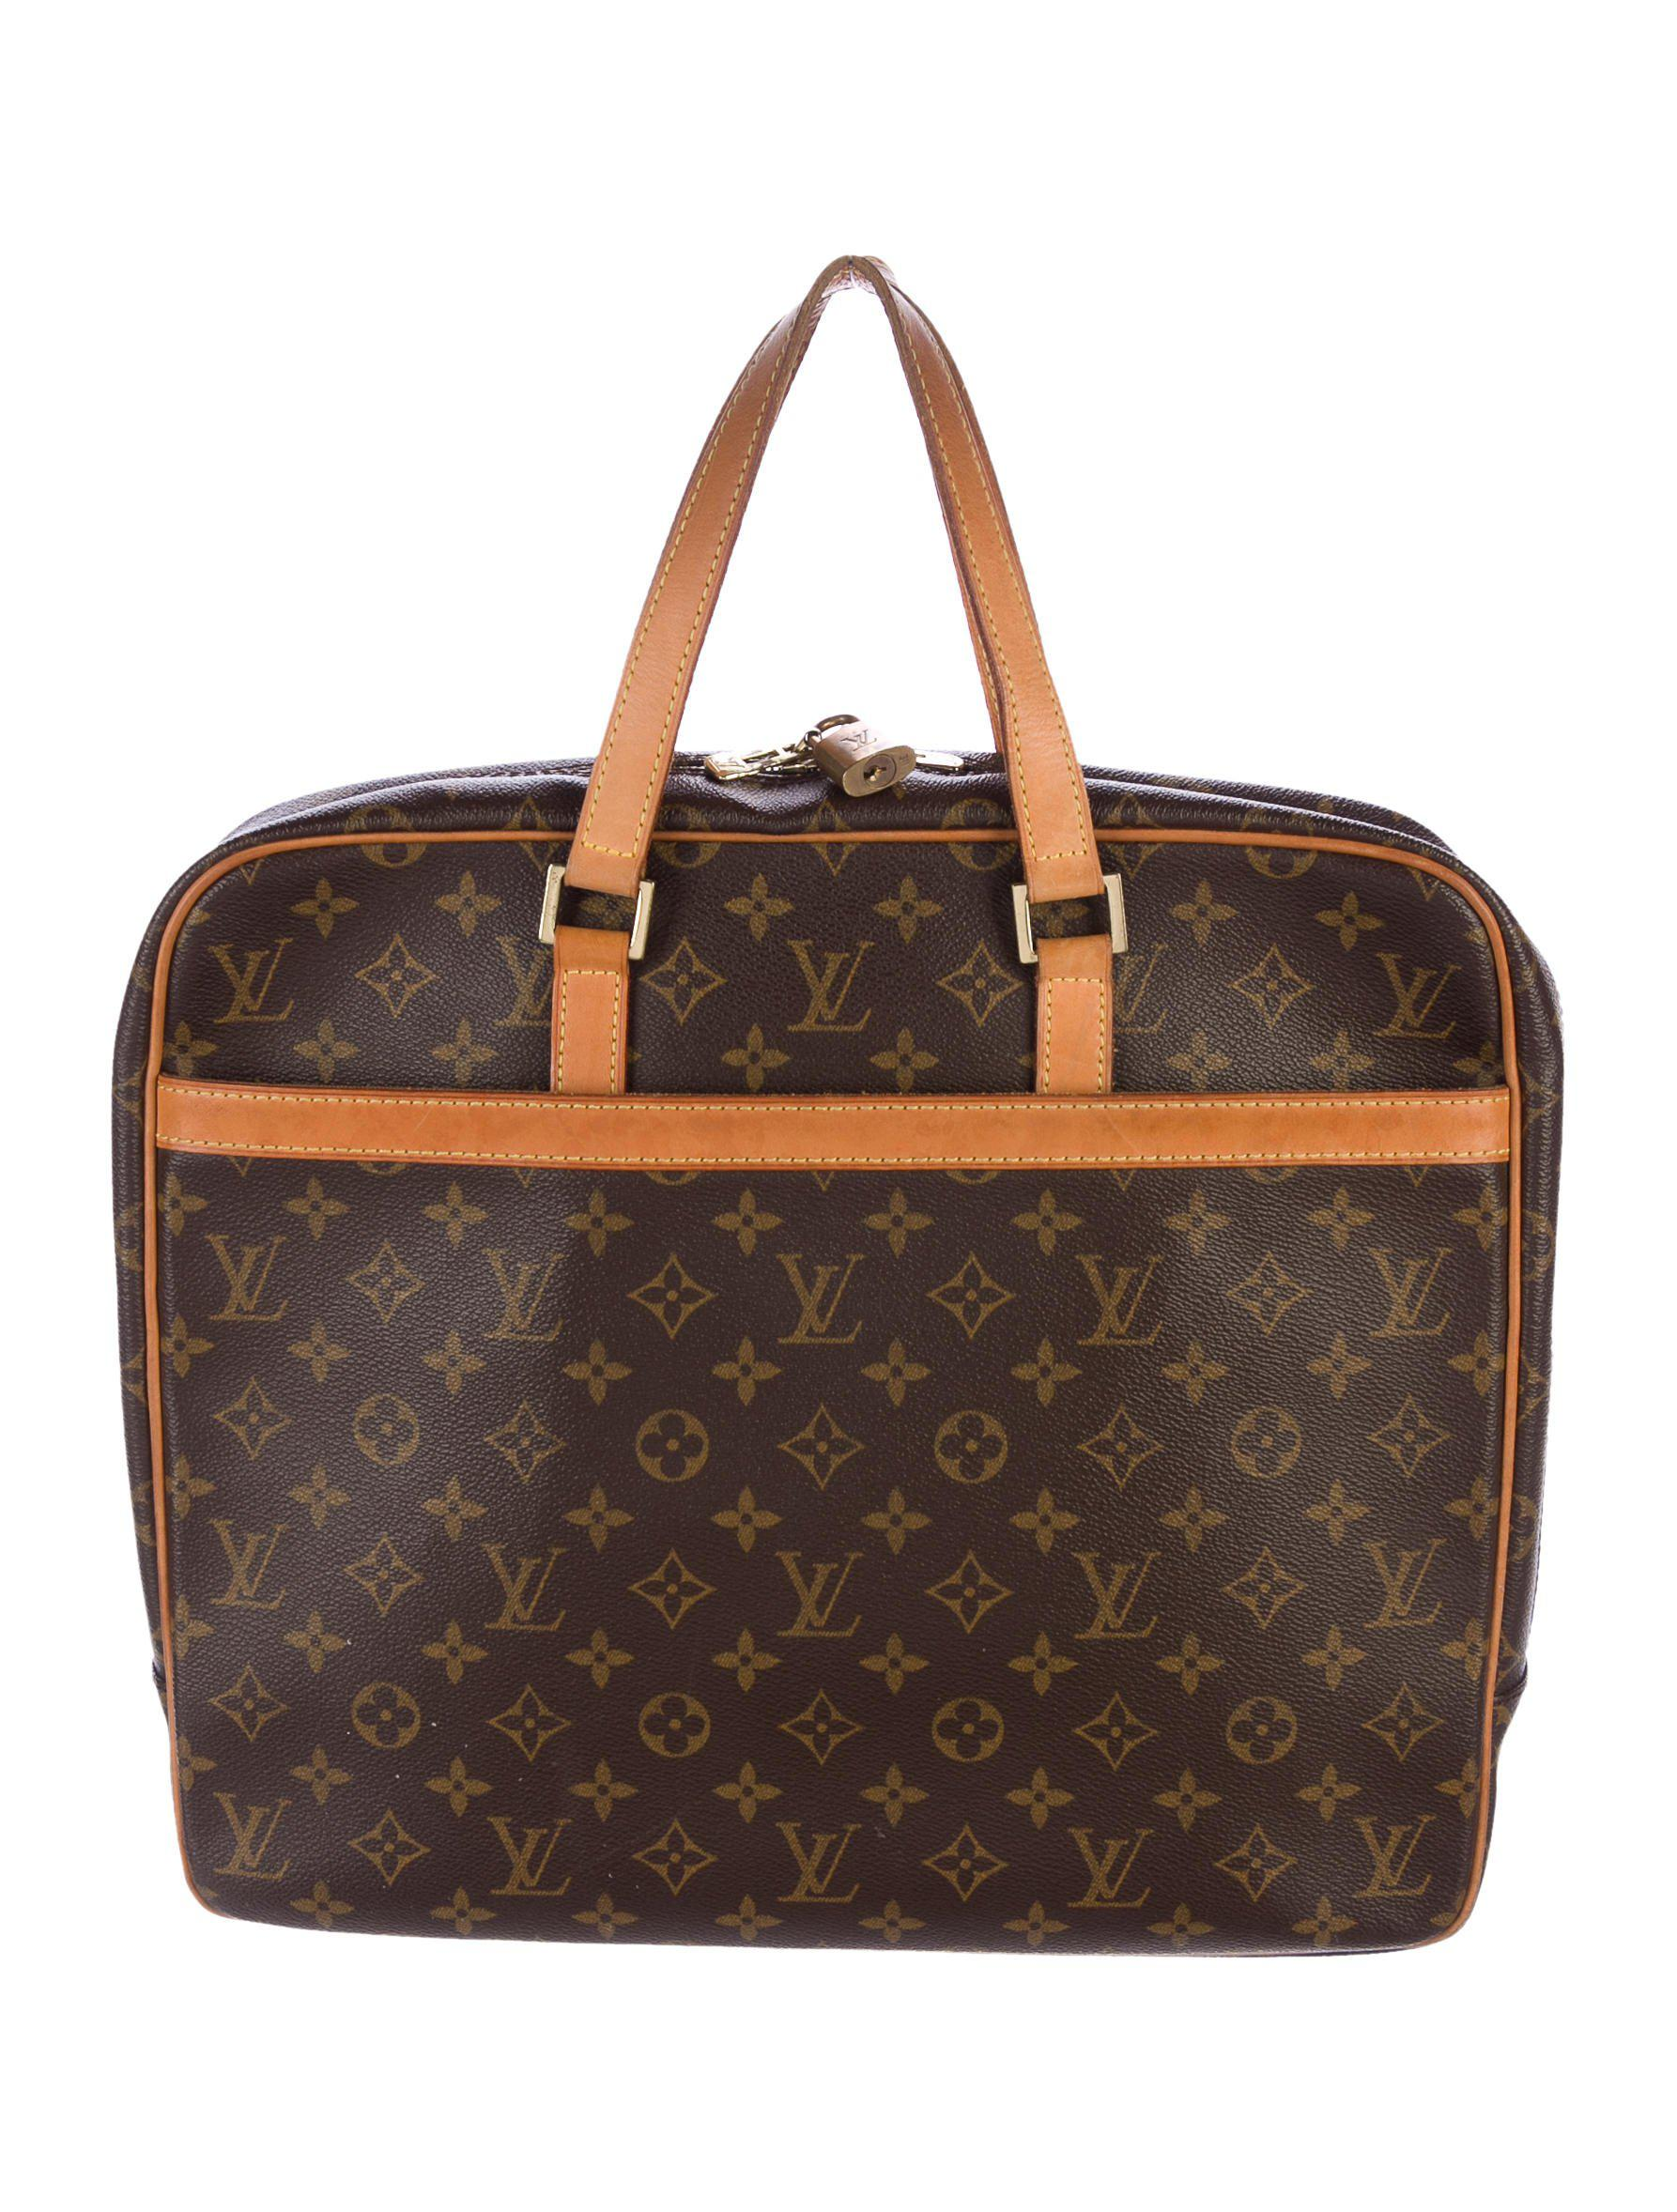 Louis Vuitton Monogram Portedocuments Briefcase Brown In Natural - Porte document fossil